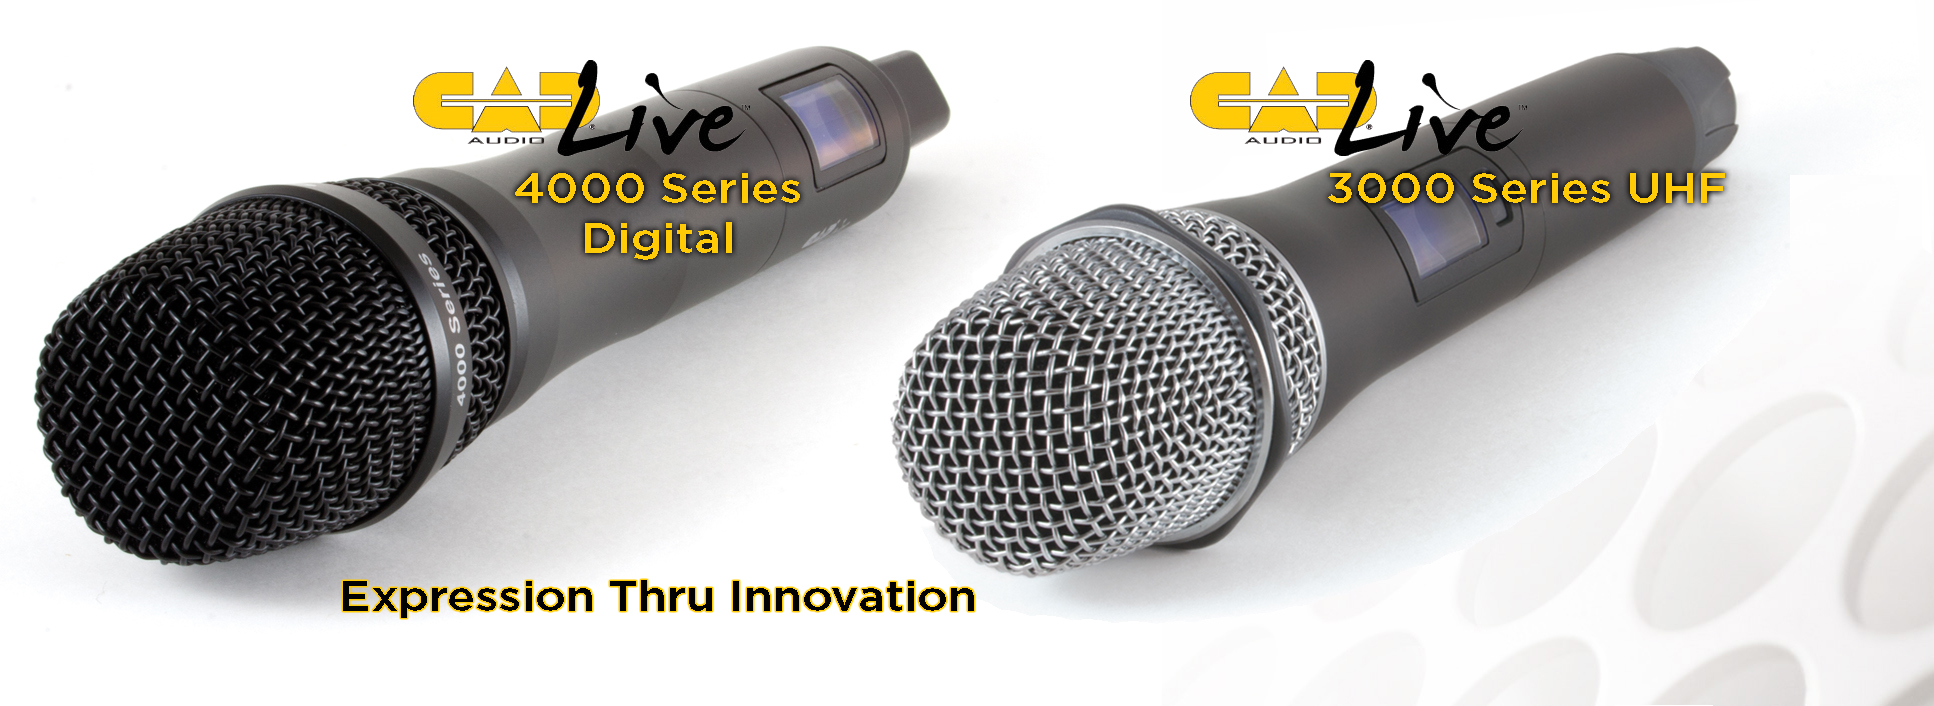 Cad Audio The Brand Used By Professionals 210 Astatic Mic Wiring Diagram Cadlive 3000 Series Wireless